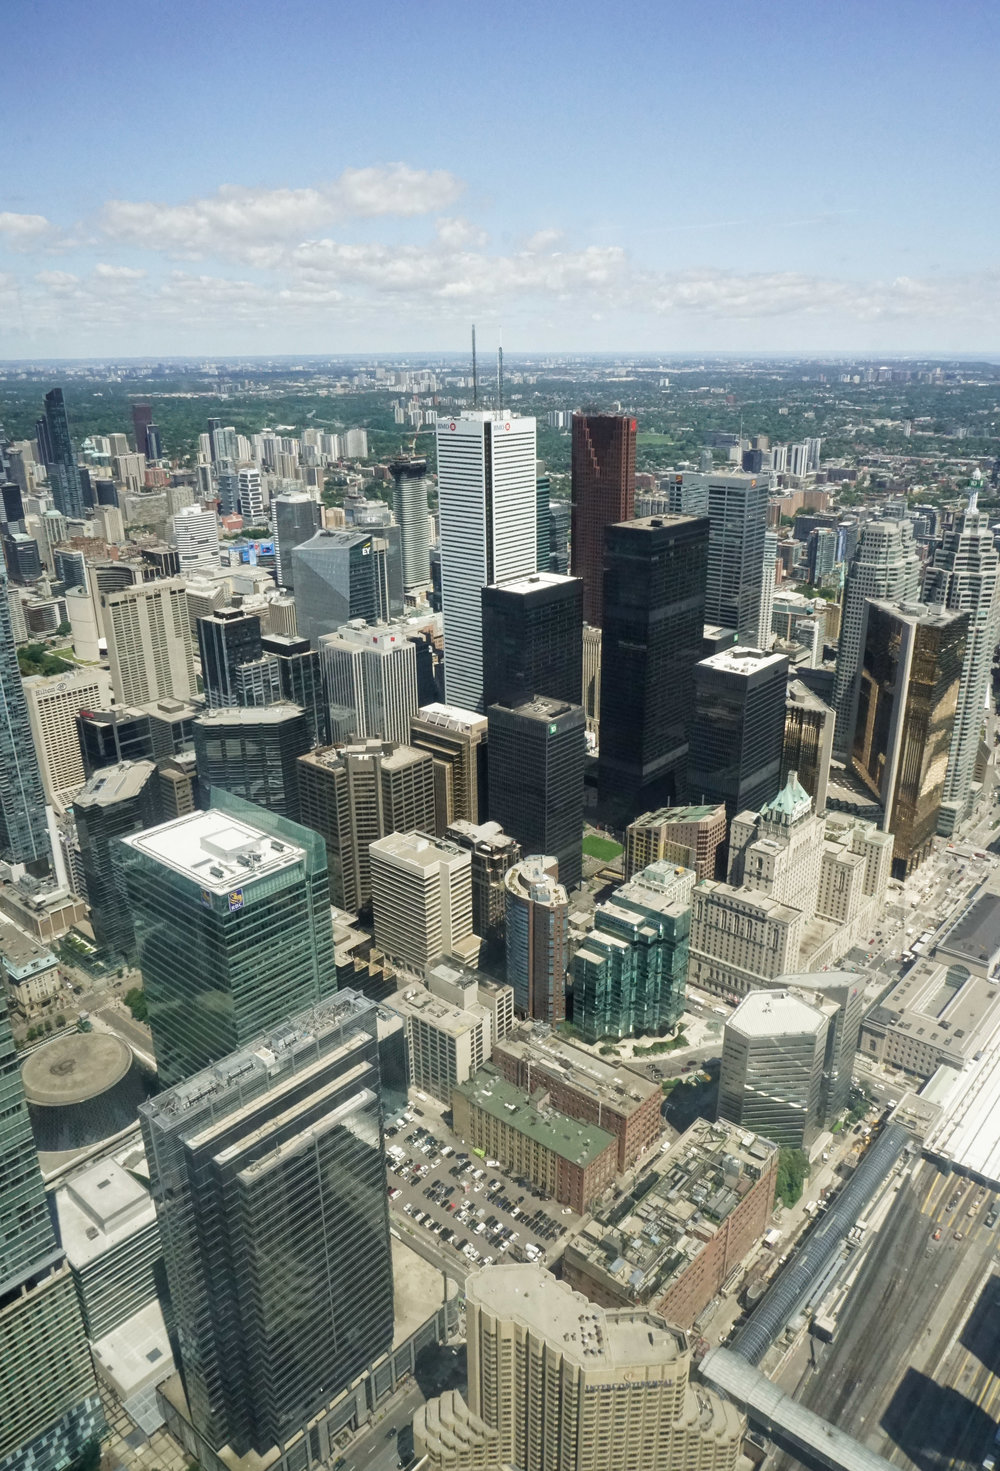 curio.trips.canada.ontario.toronto.cn.tower.city.view.downtown.core-2.jpg